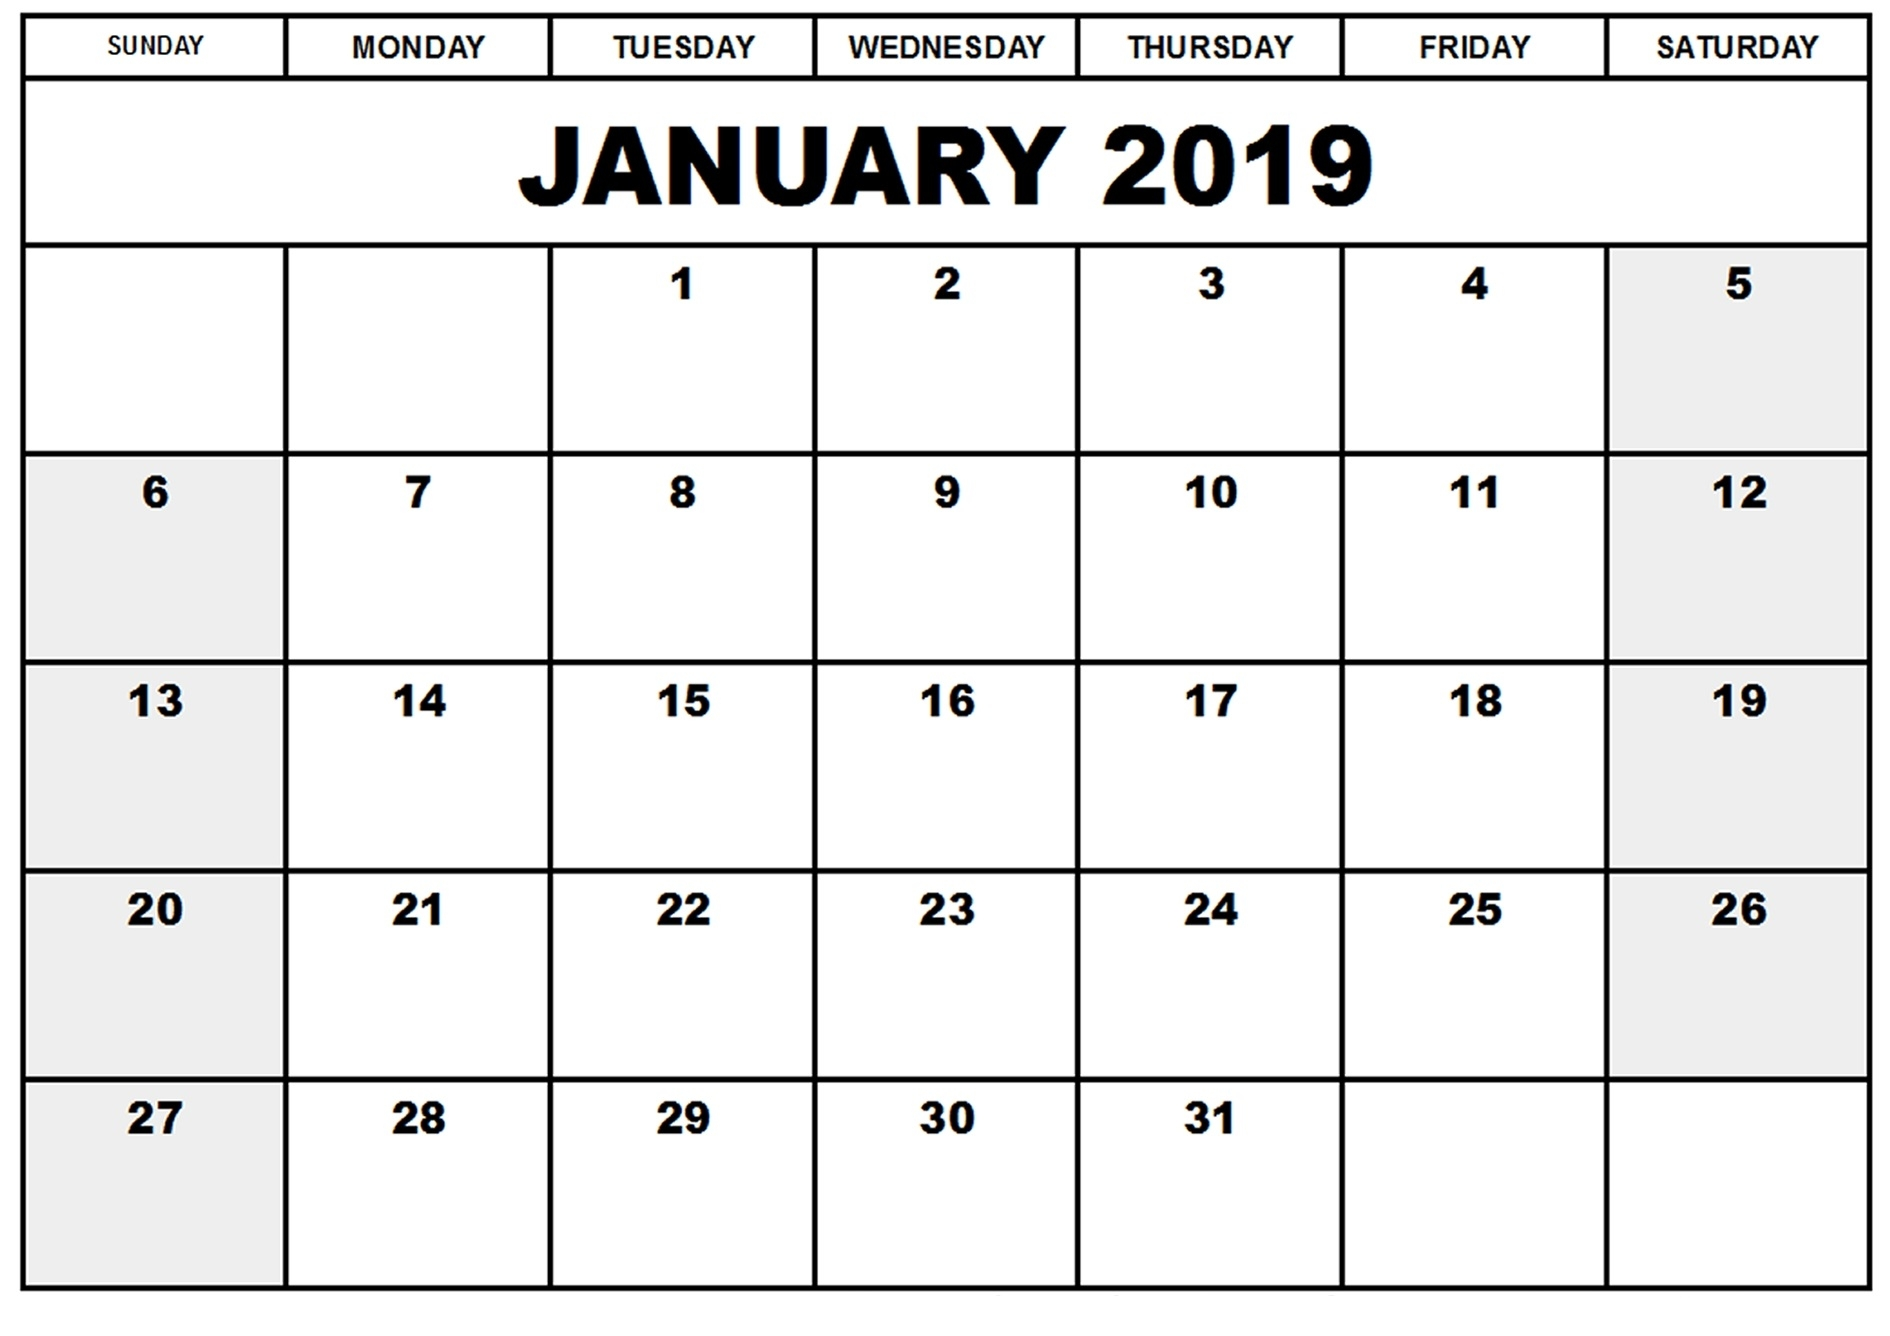 january 2019 calendar printable pdf excel word printable::January 2019 Calendar Word